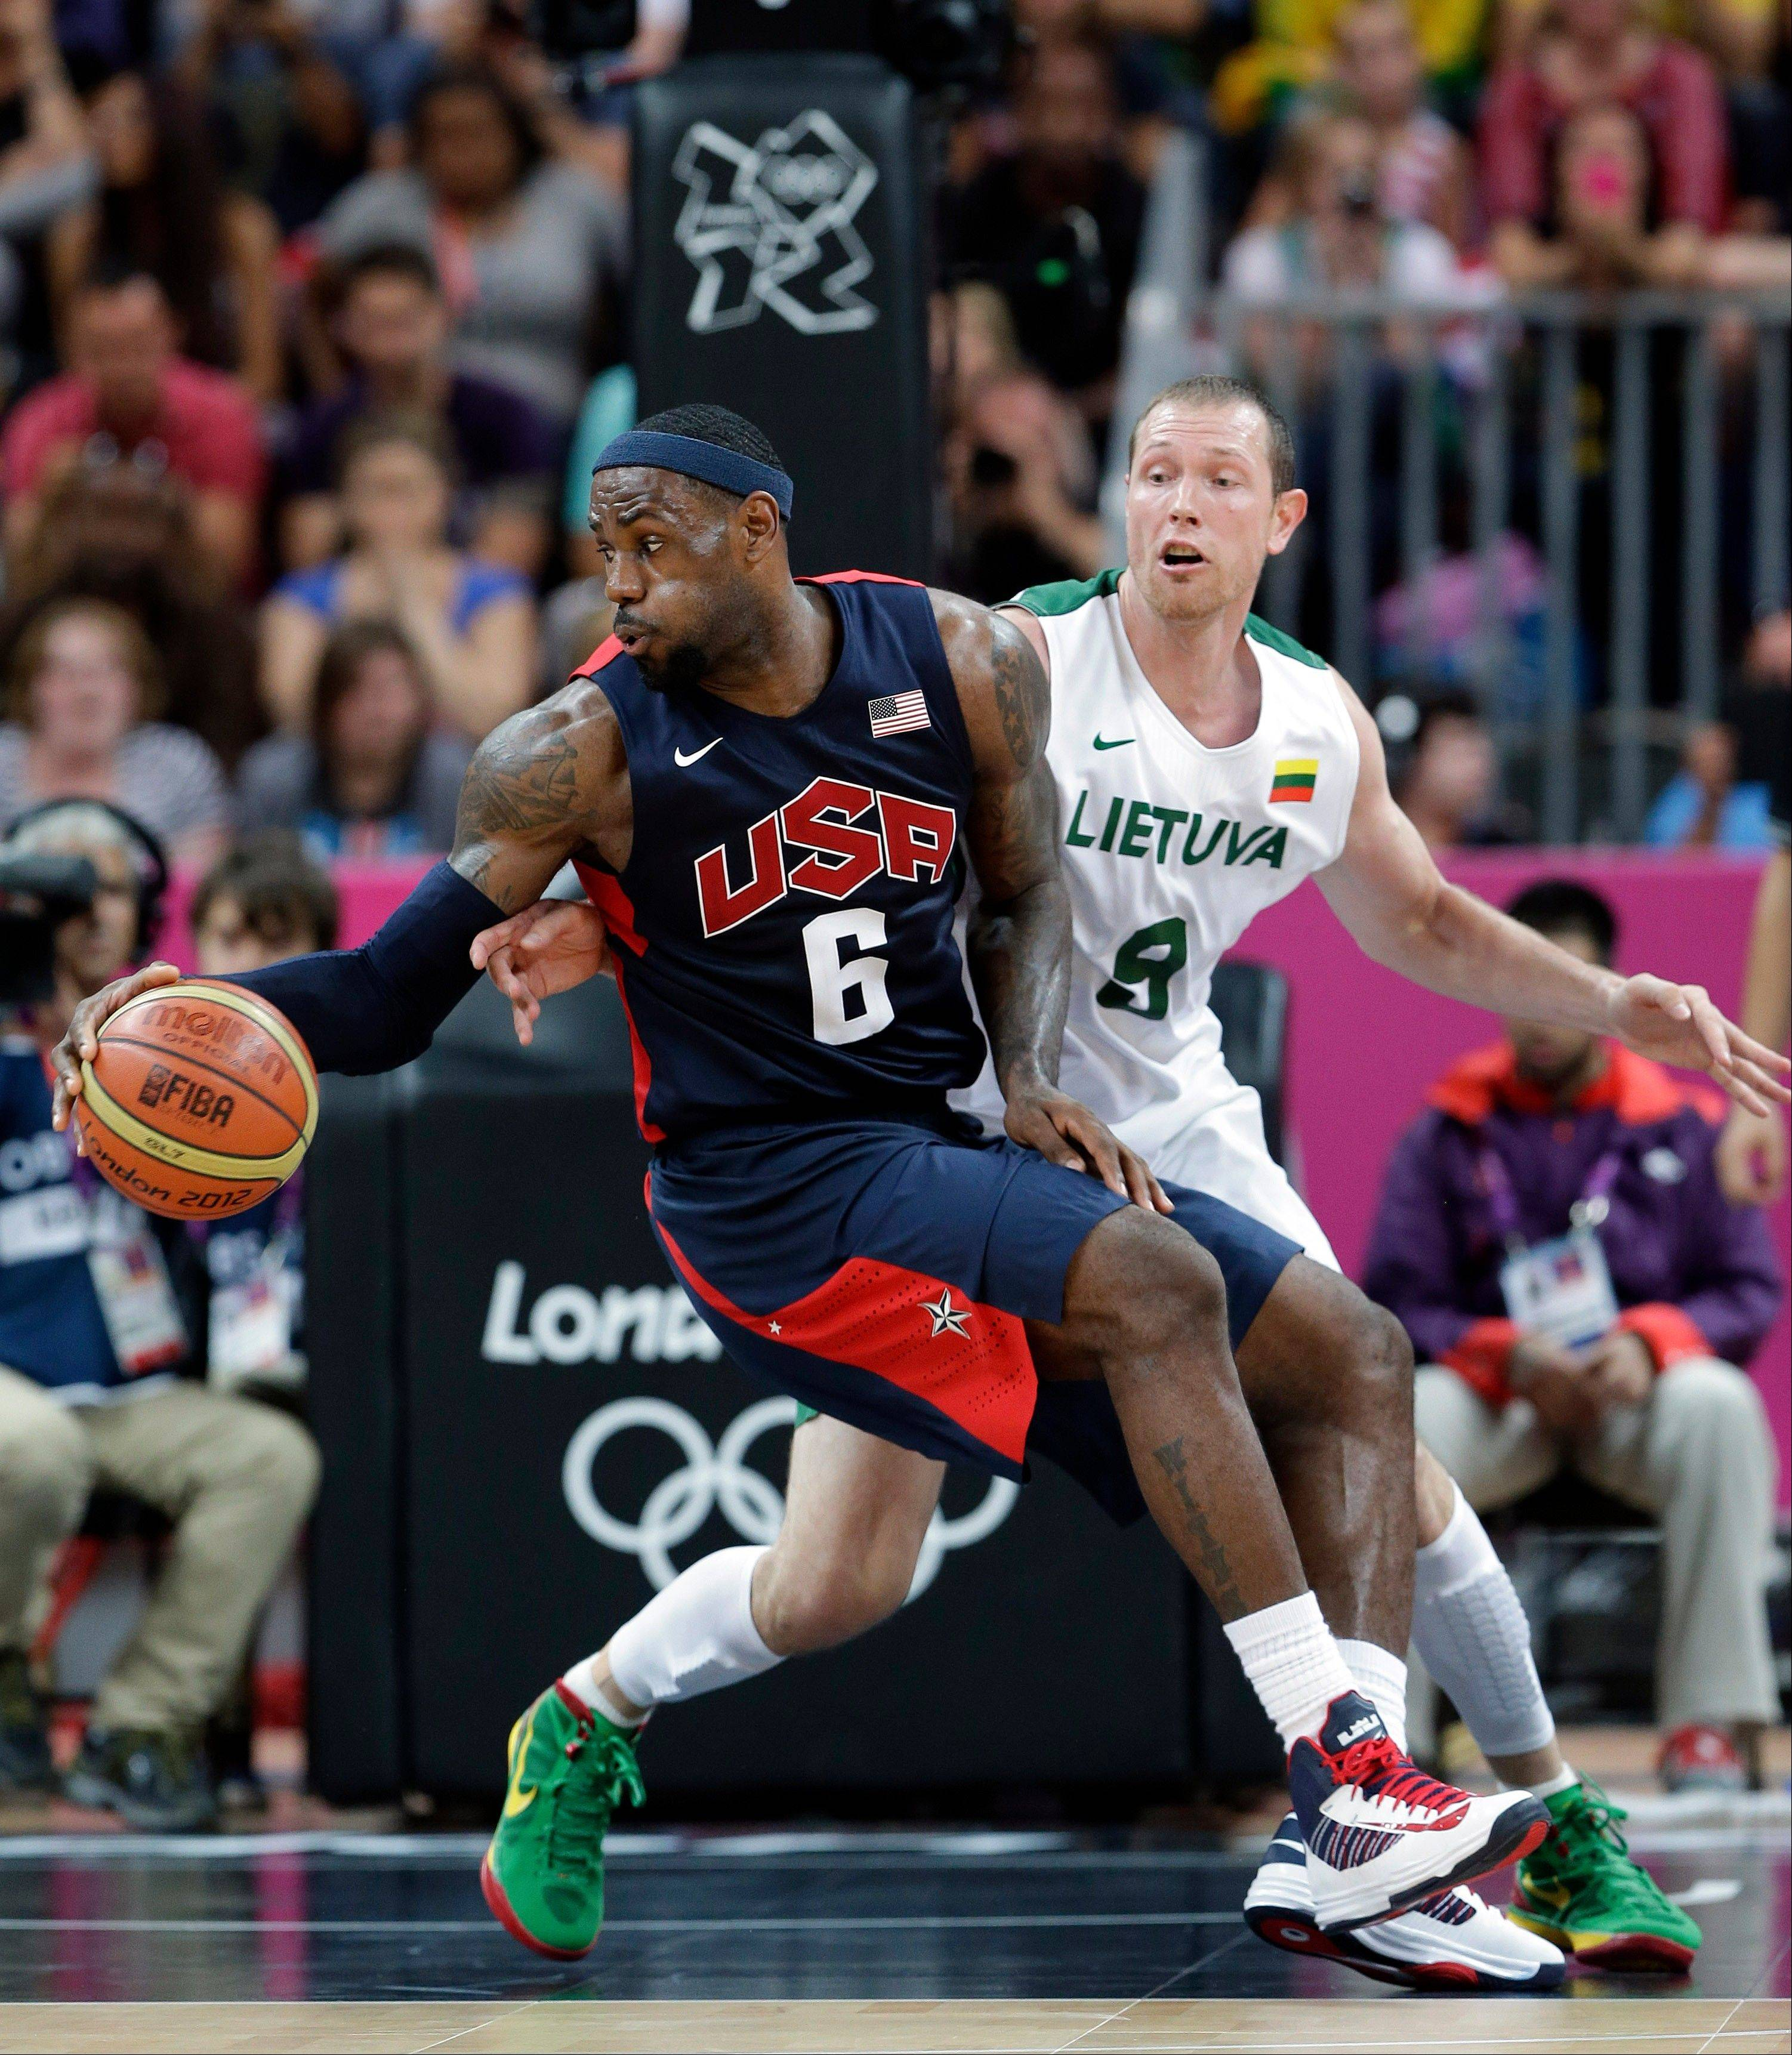 USA forward LeBron James works the ball past Lithuania�s Renaldas Seibutis Saturday during a preliminary men�s basketball game at the 2012 Summer Olympics.